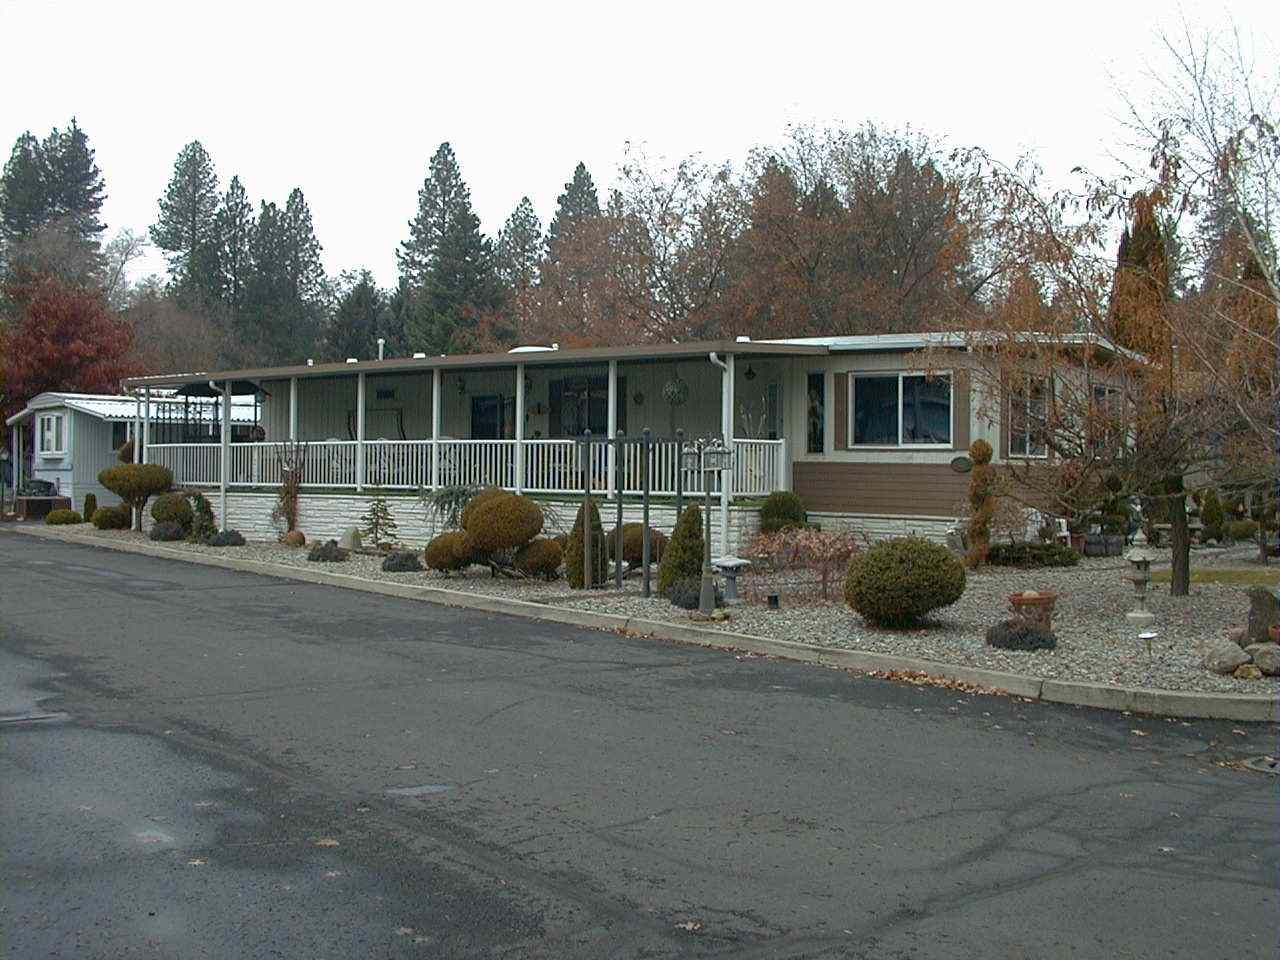 208 S Neyland Rd #15, Liberty Lake, WA 99019 - #: 202015737